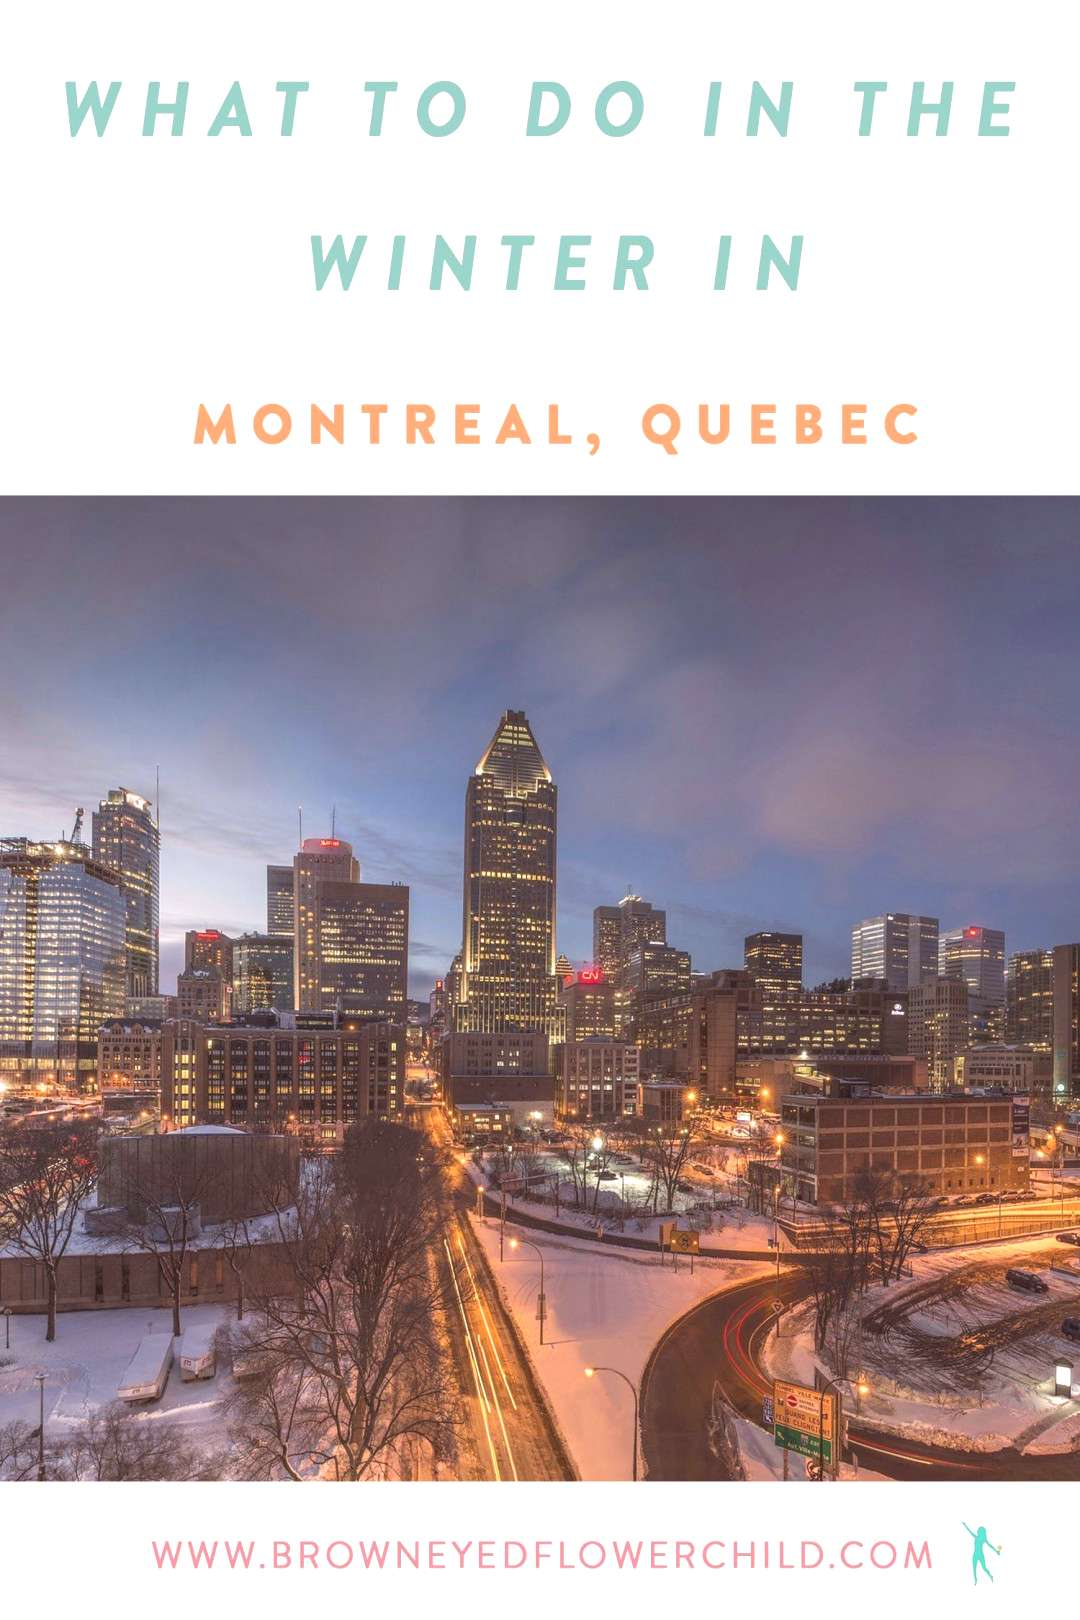 What To Do In The Winter In Montréal Québec What to do in the Winter in Montréal, Québec